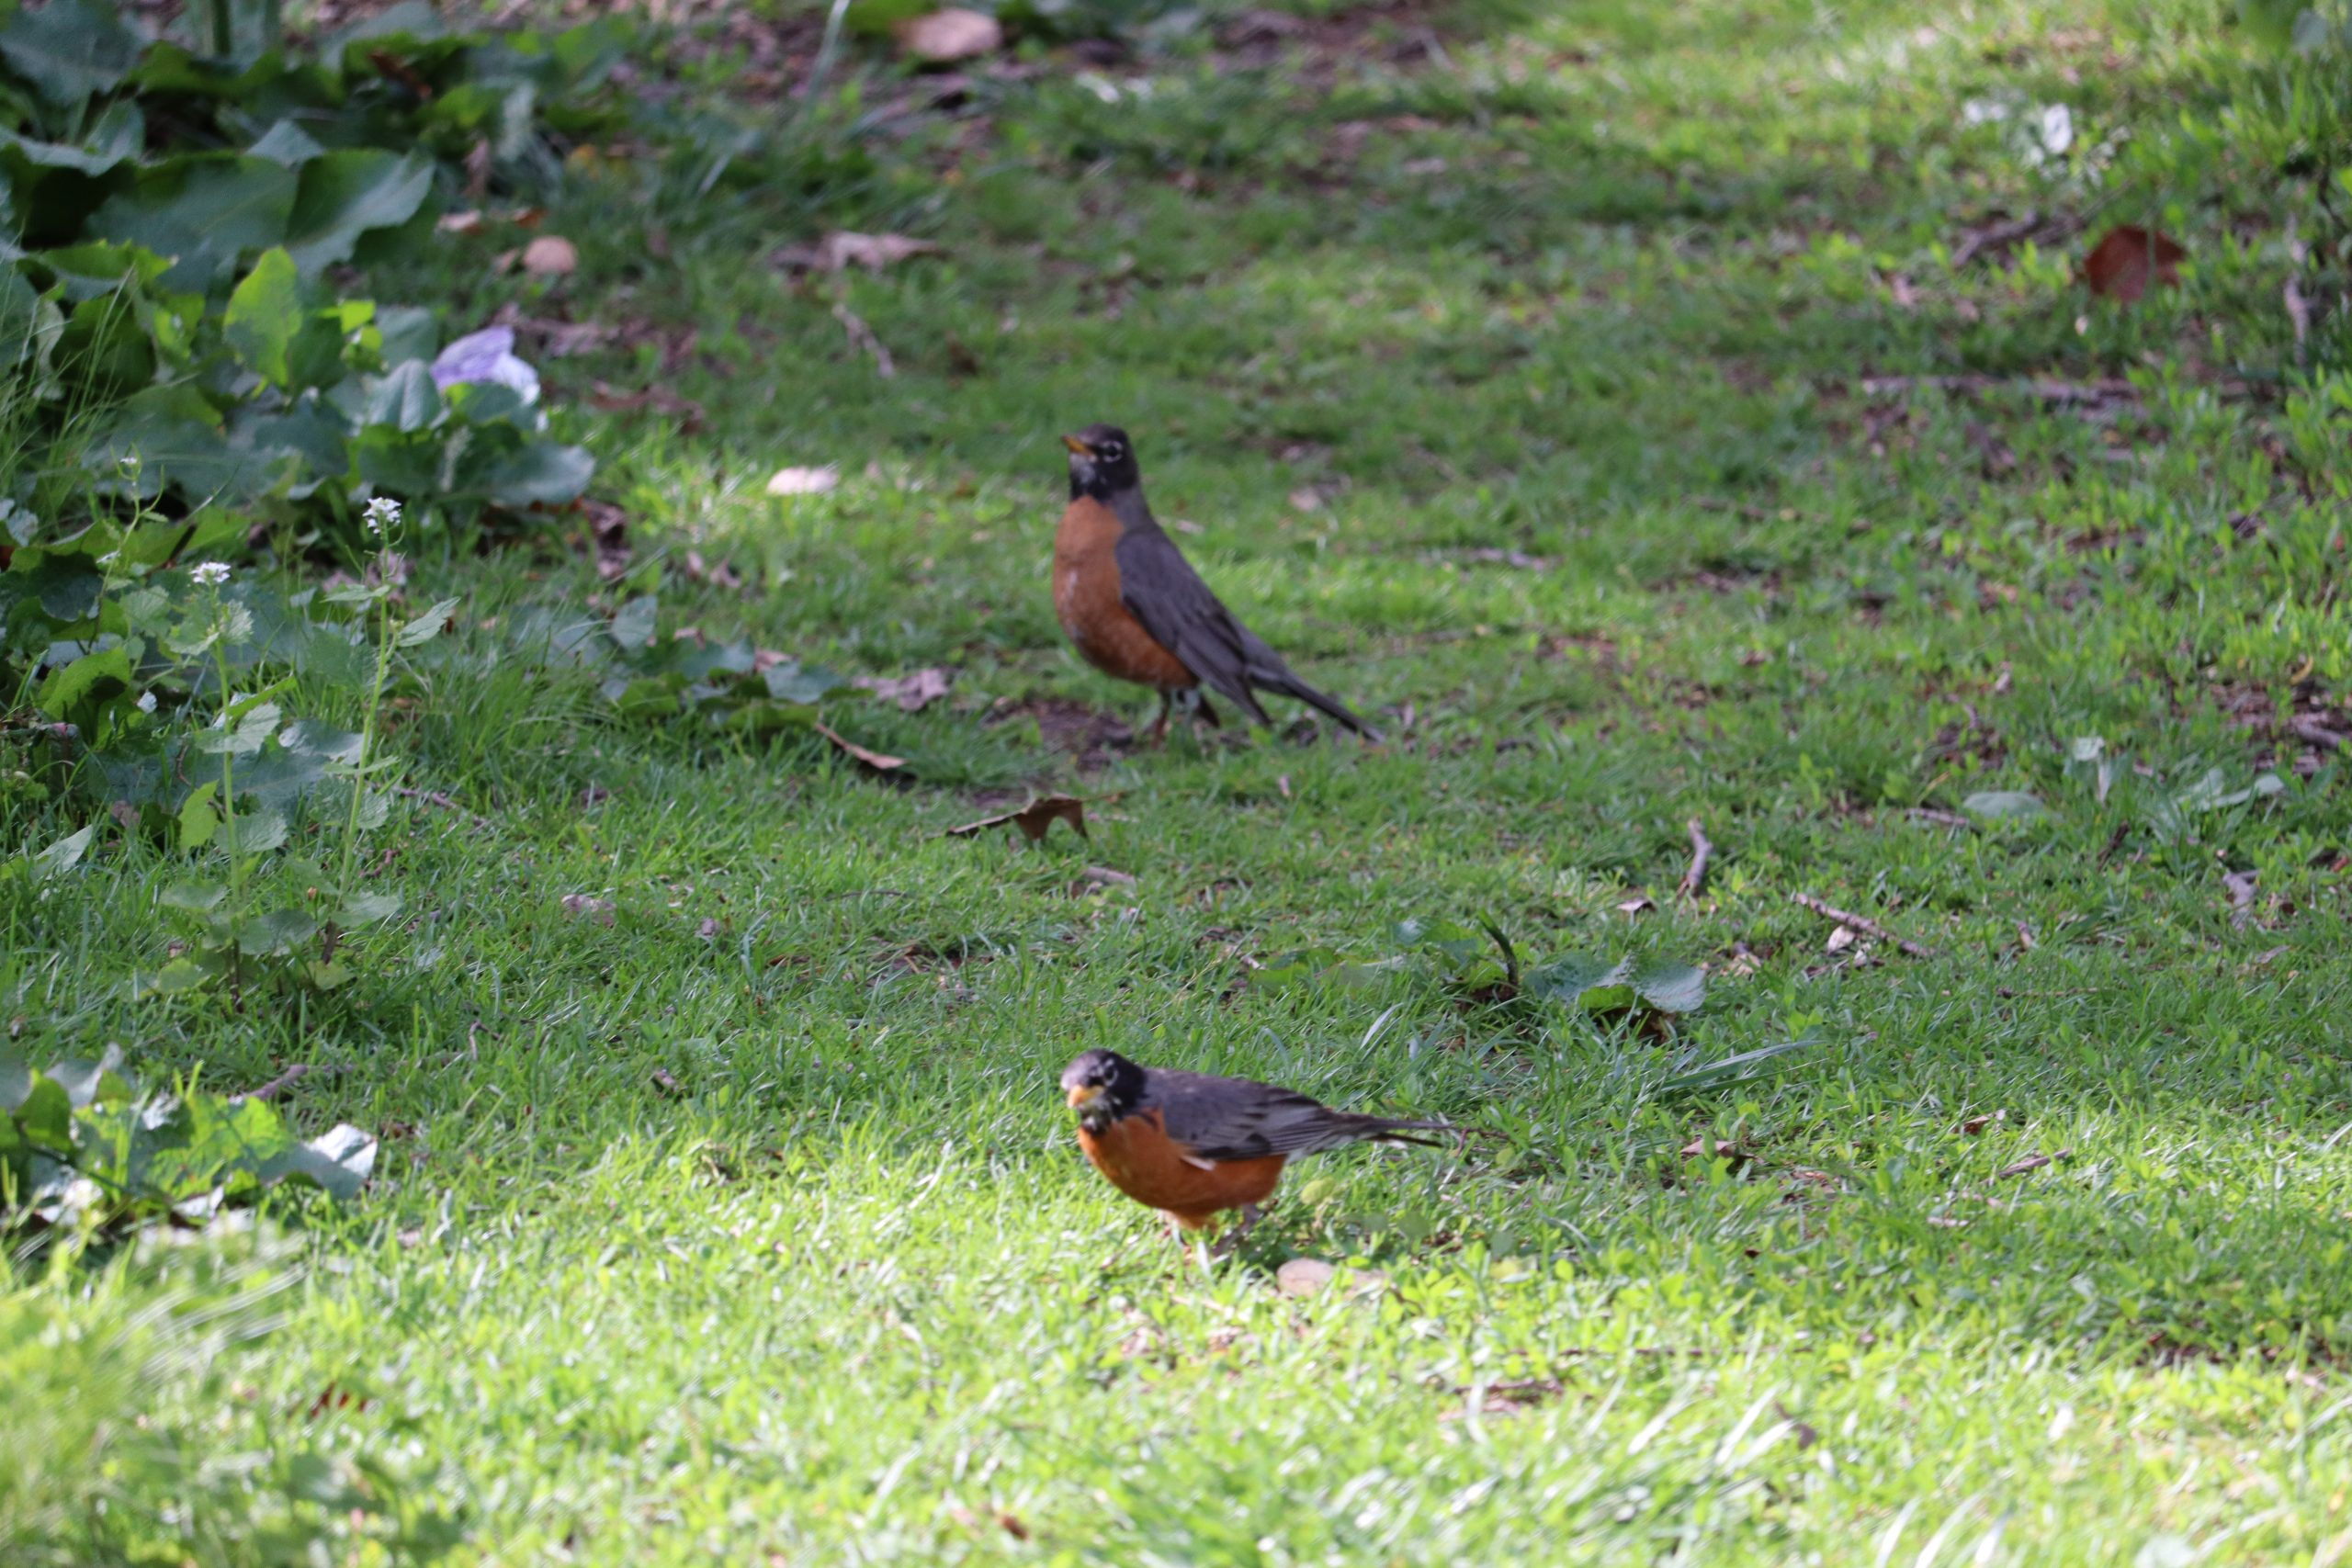 A pair of American Robins. I spotted these down by Sylvan Water. I felt like I saw more pairs of birds as I got closer to the water.